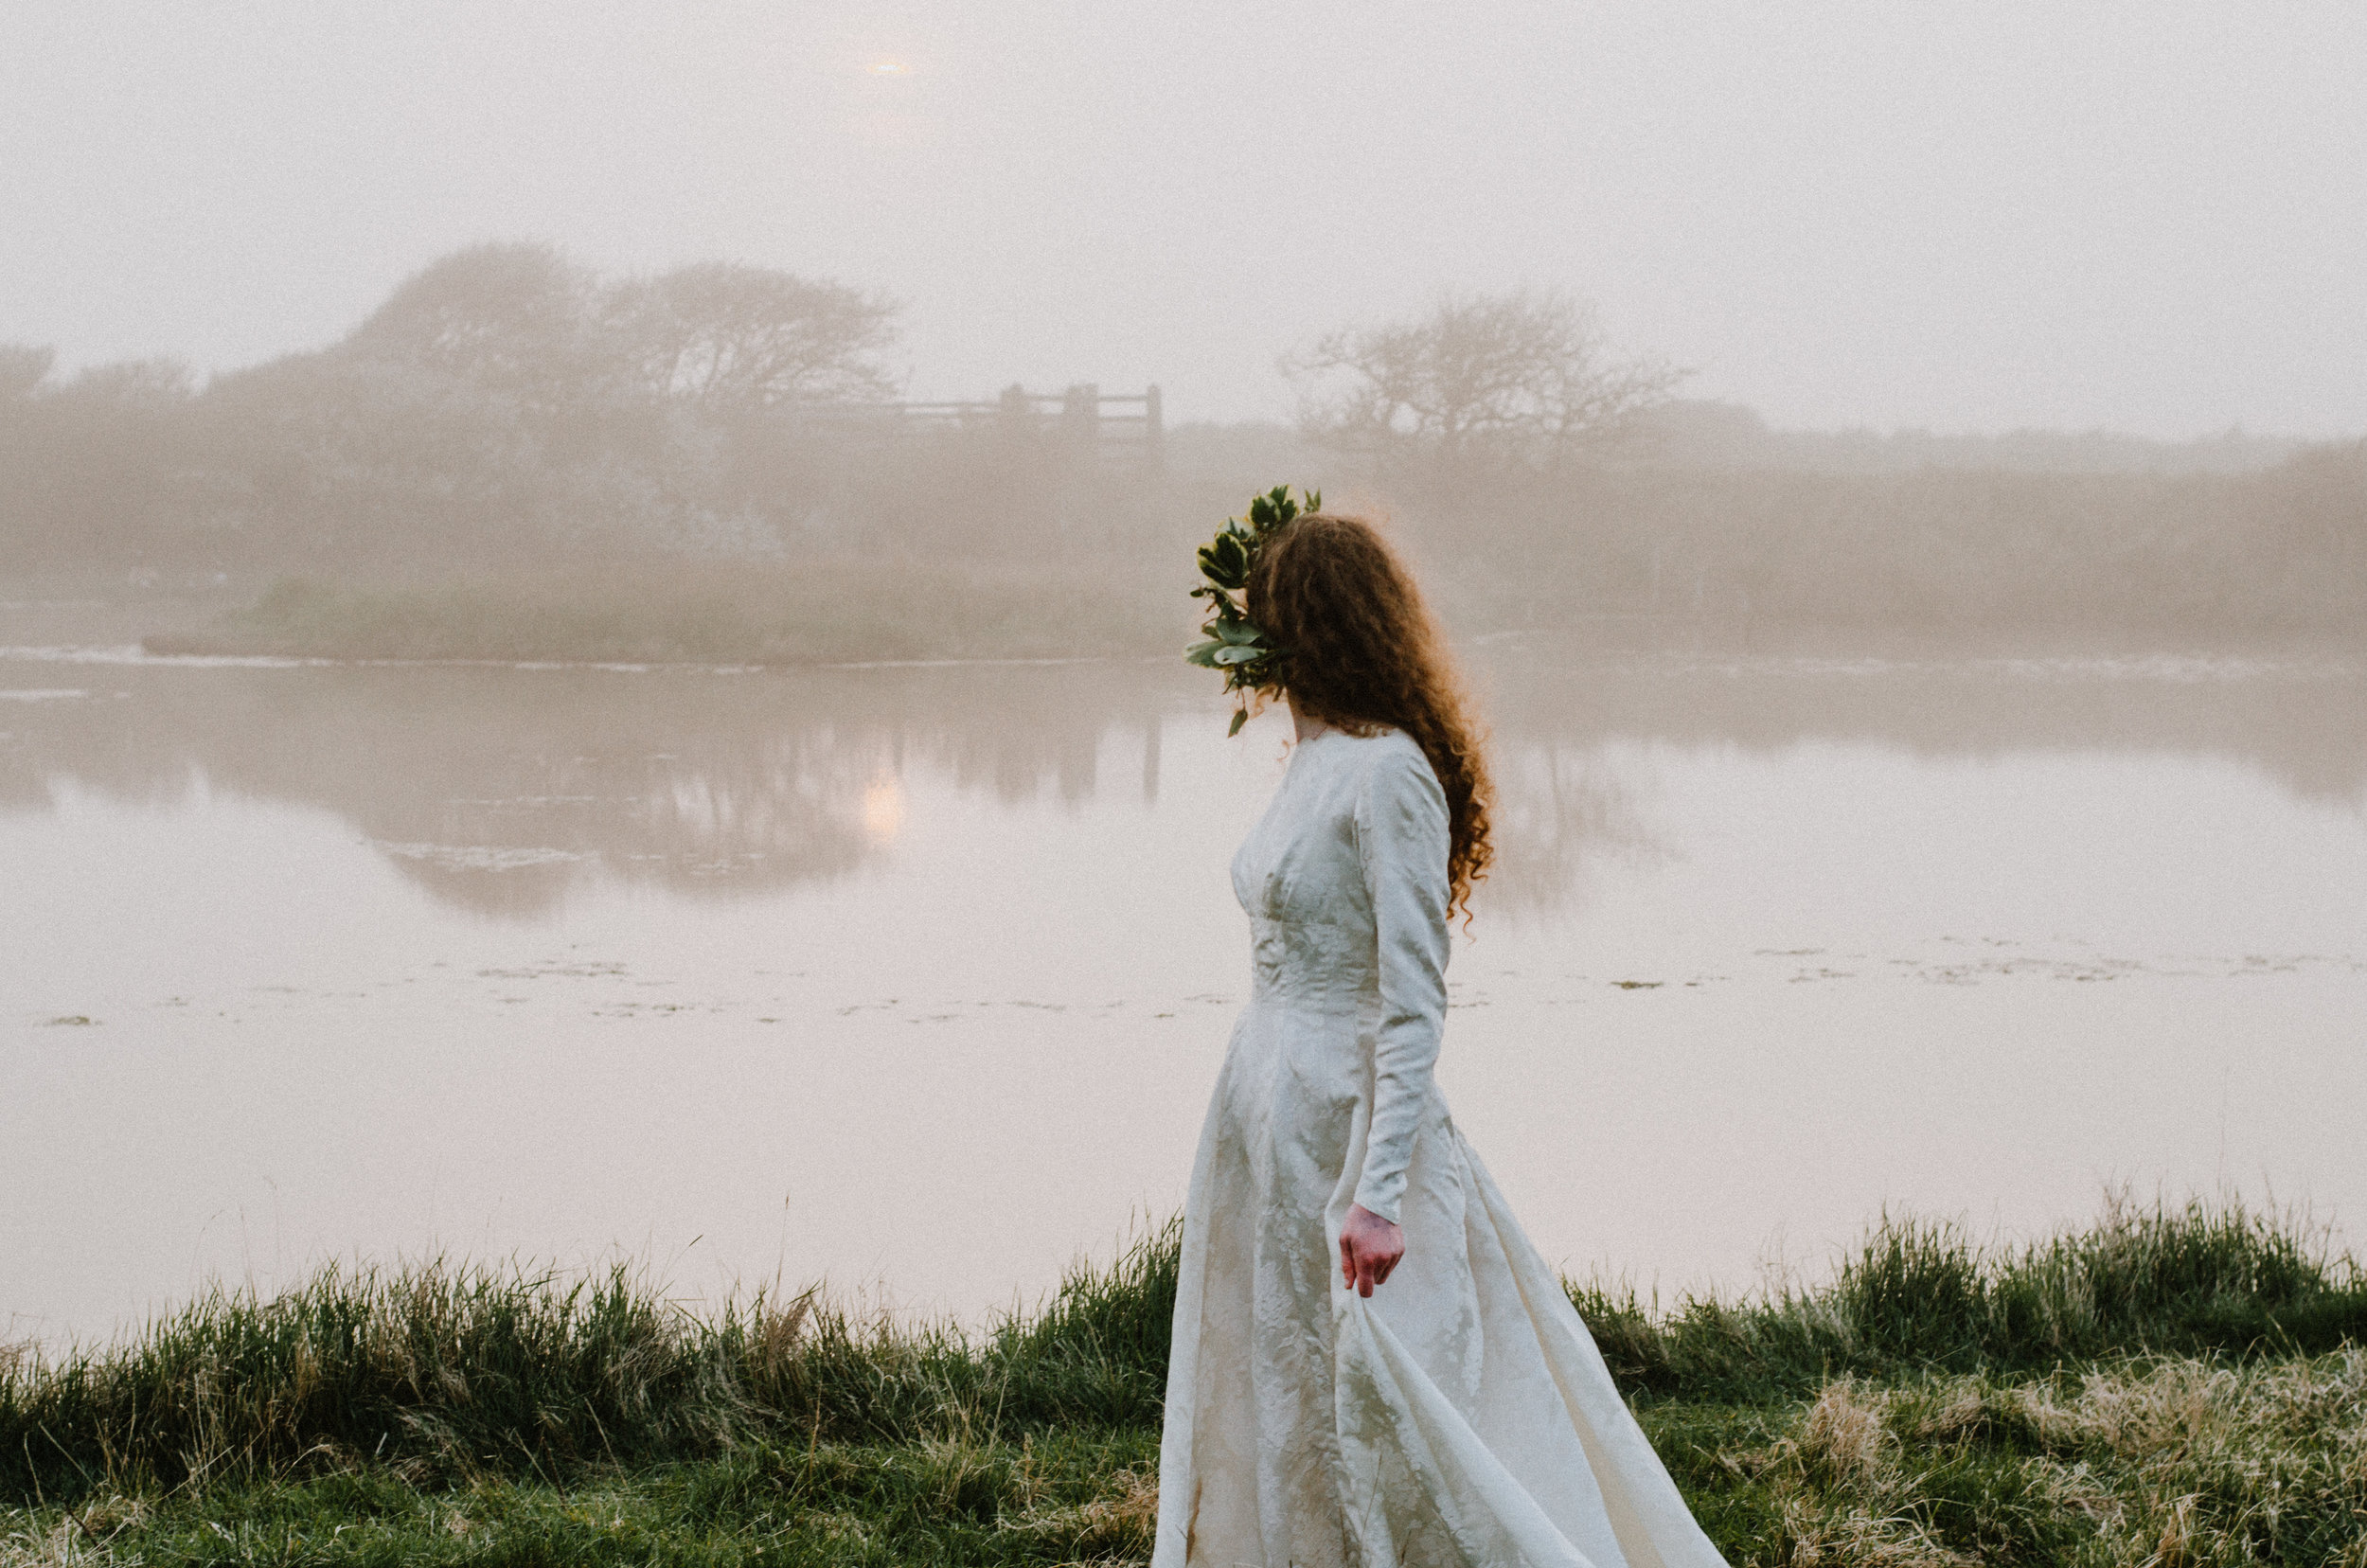 Bridal - Cuckmere Haven 2018 - Aiste Saulyte Photography-85.jpg